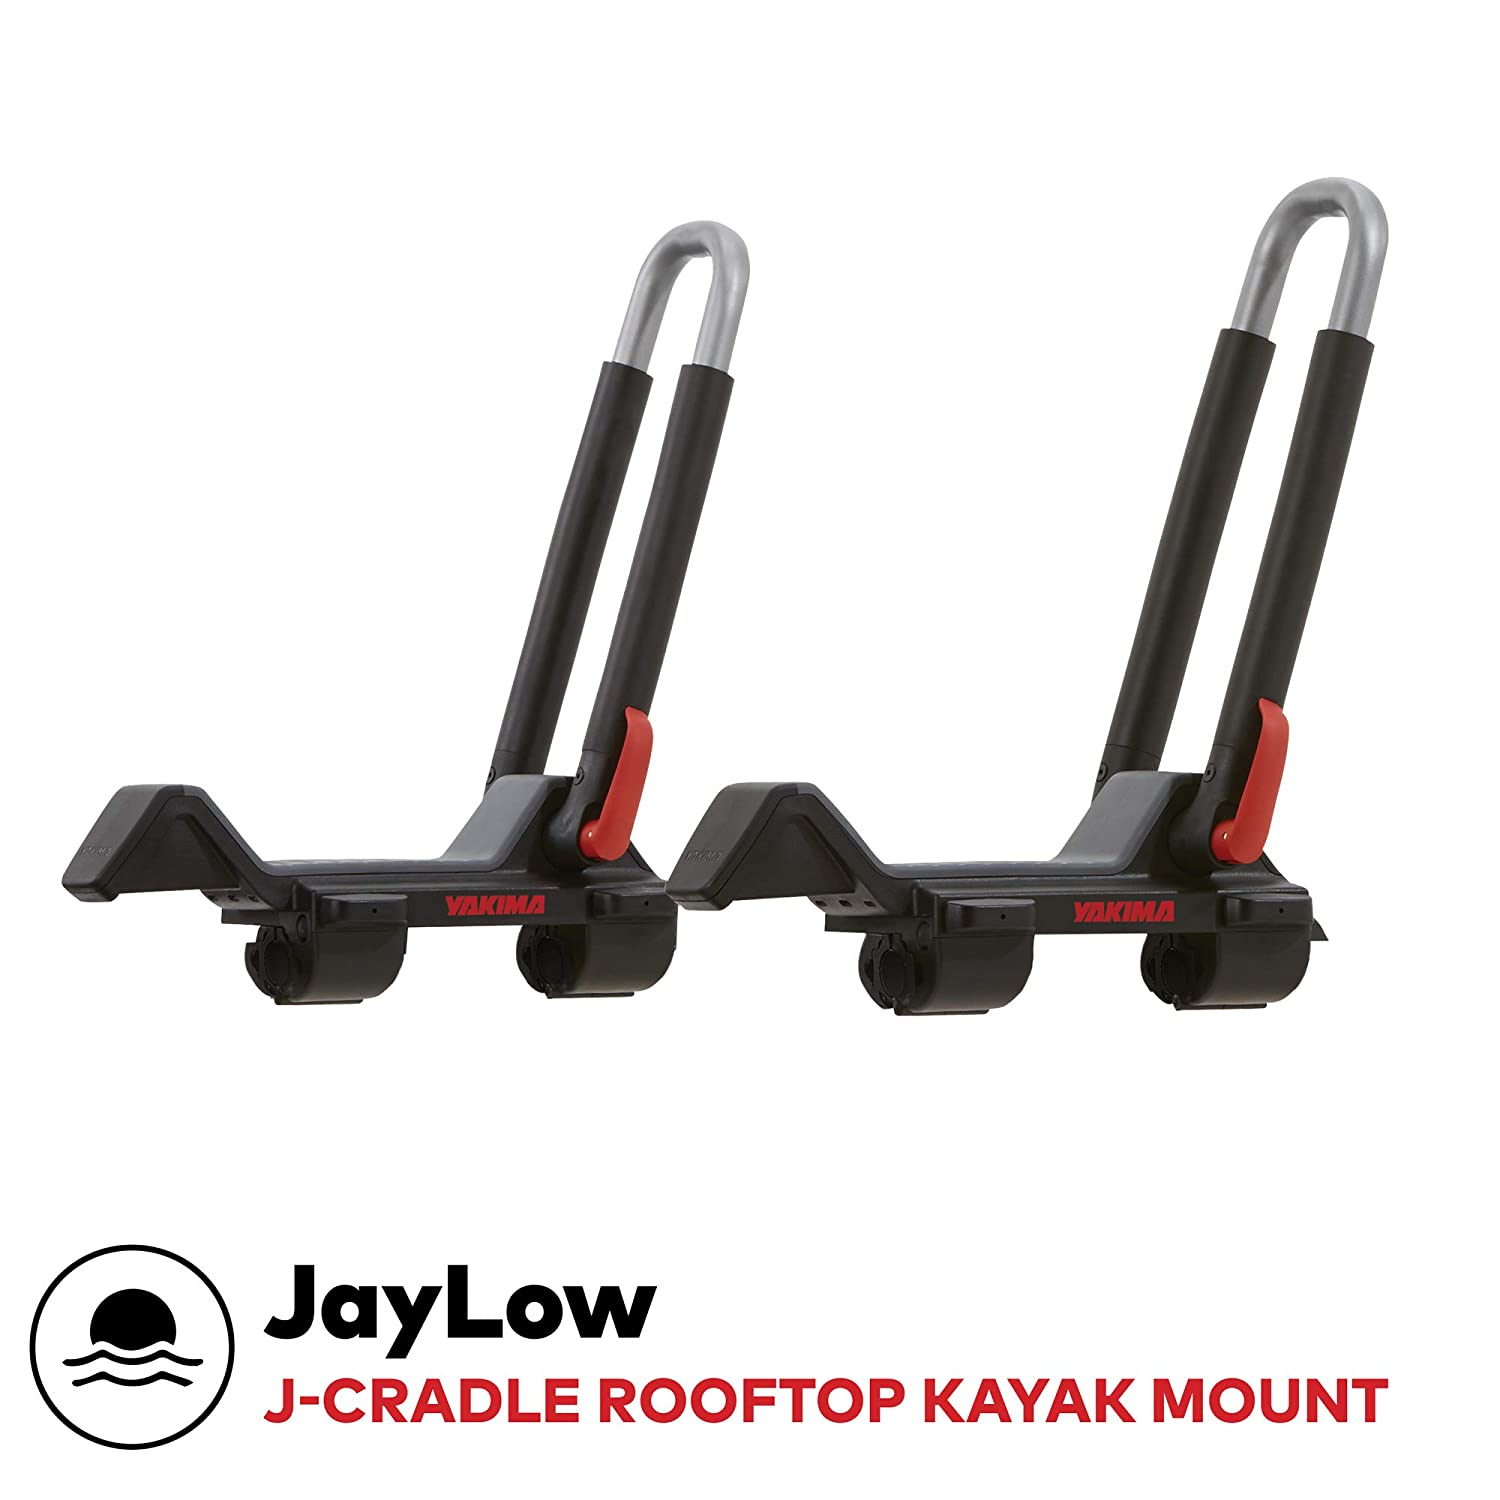 Top 5 Best Kayak Carriers for Two Kayaks